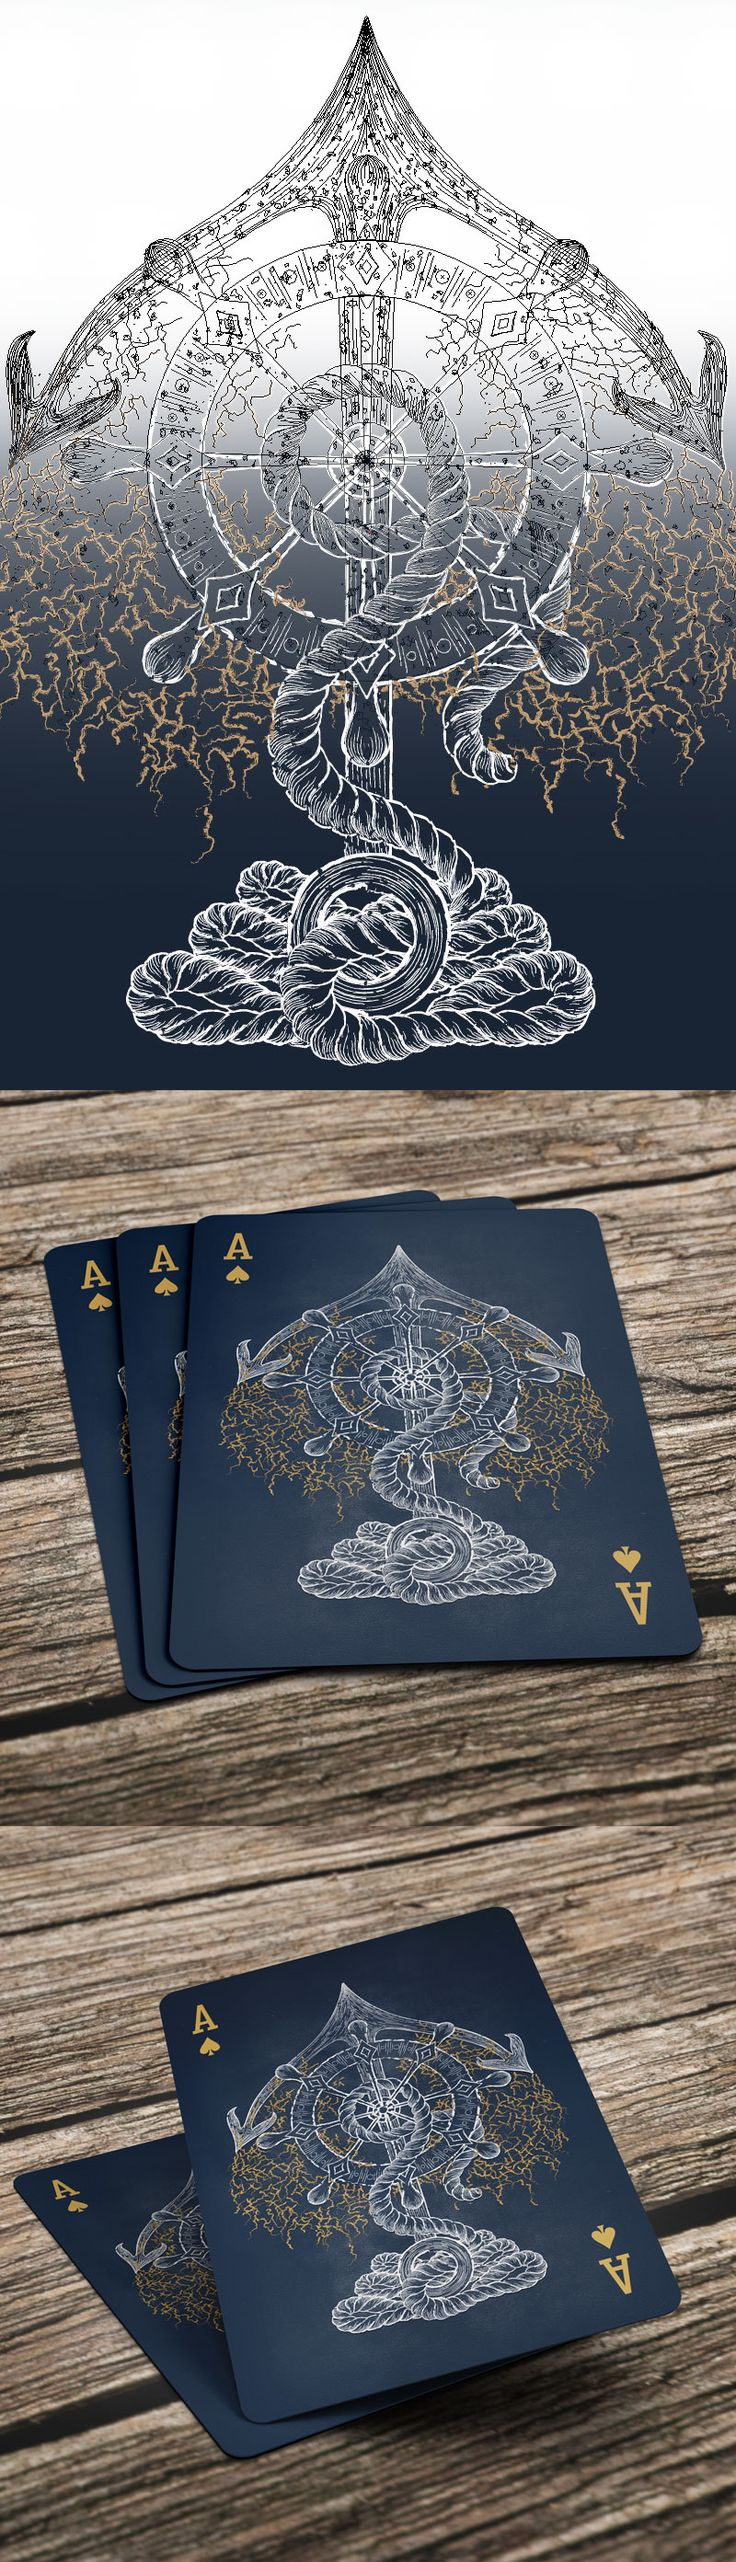 Ace of Spades - exclusive decks of cards for Ellusionist